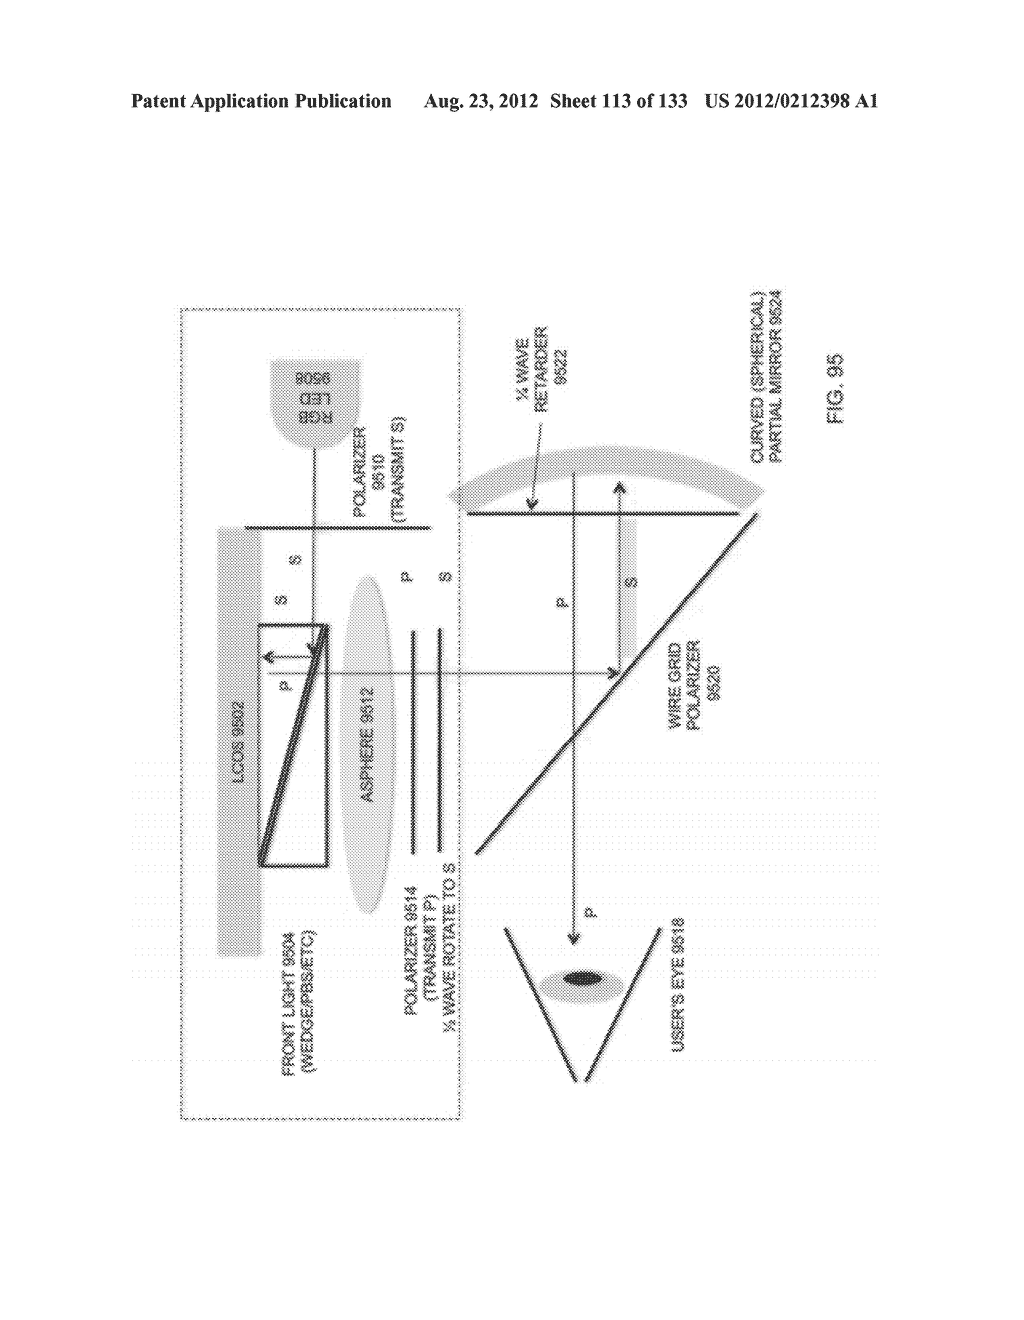 SEE-THROUGH NEAR-EYE DISPLAY GLASSES INCLUDING A PARTIALLY REFLECTIVE,     PARTIALLY TRANSMITTING OPTICAL ELEMENT - diagram, schematic, and image 114